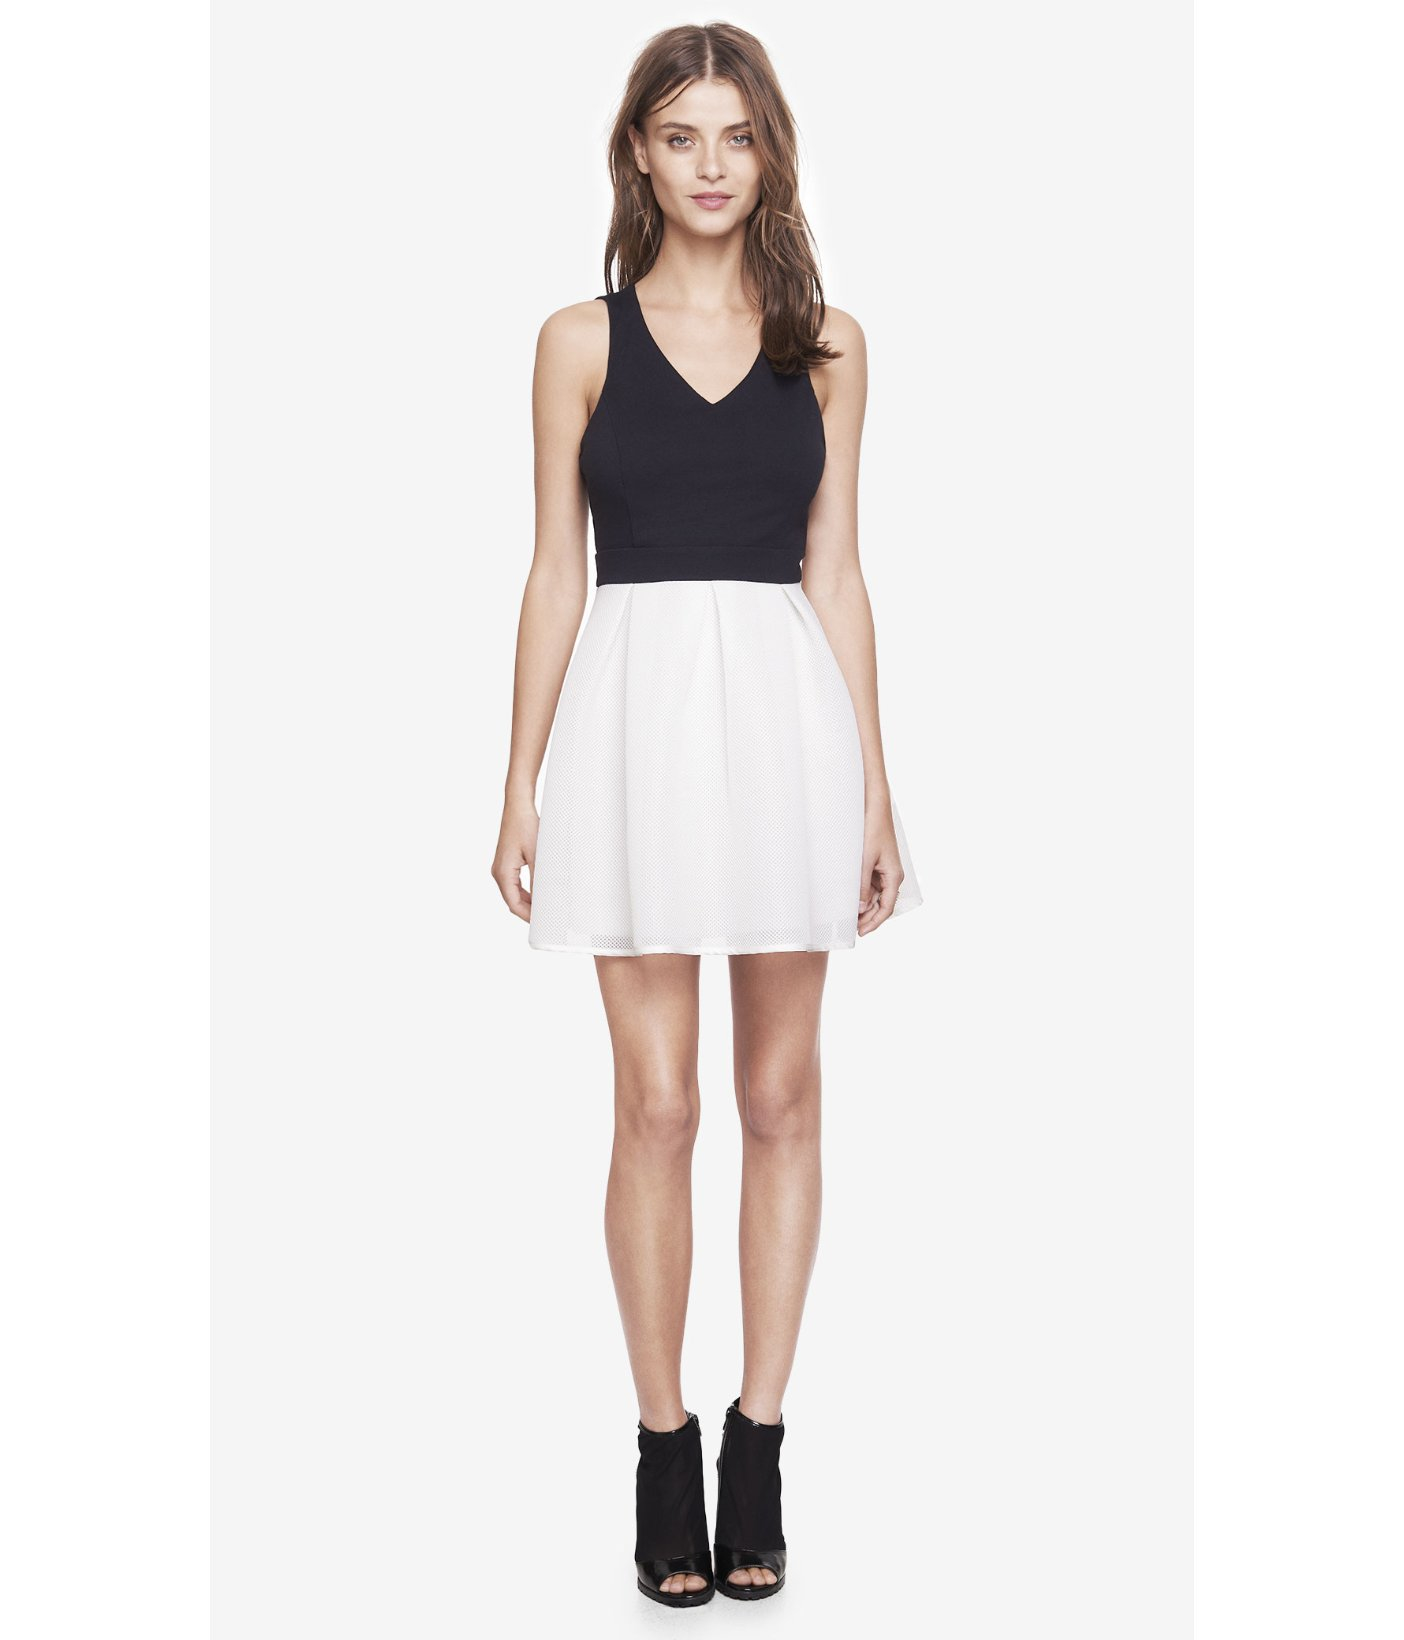 Express black and white fit and flare dress